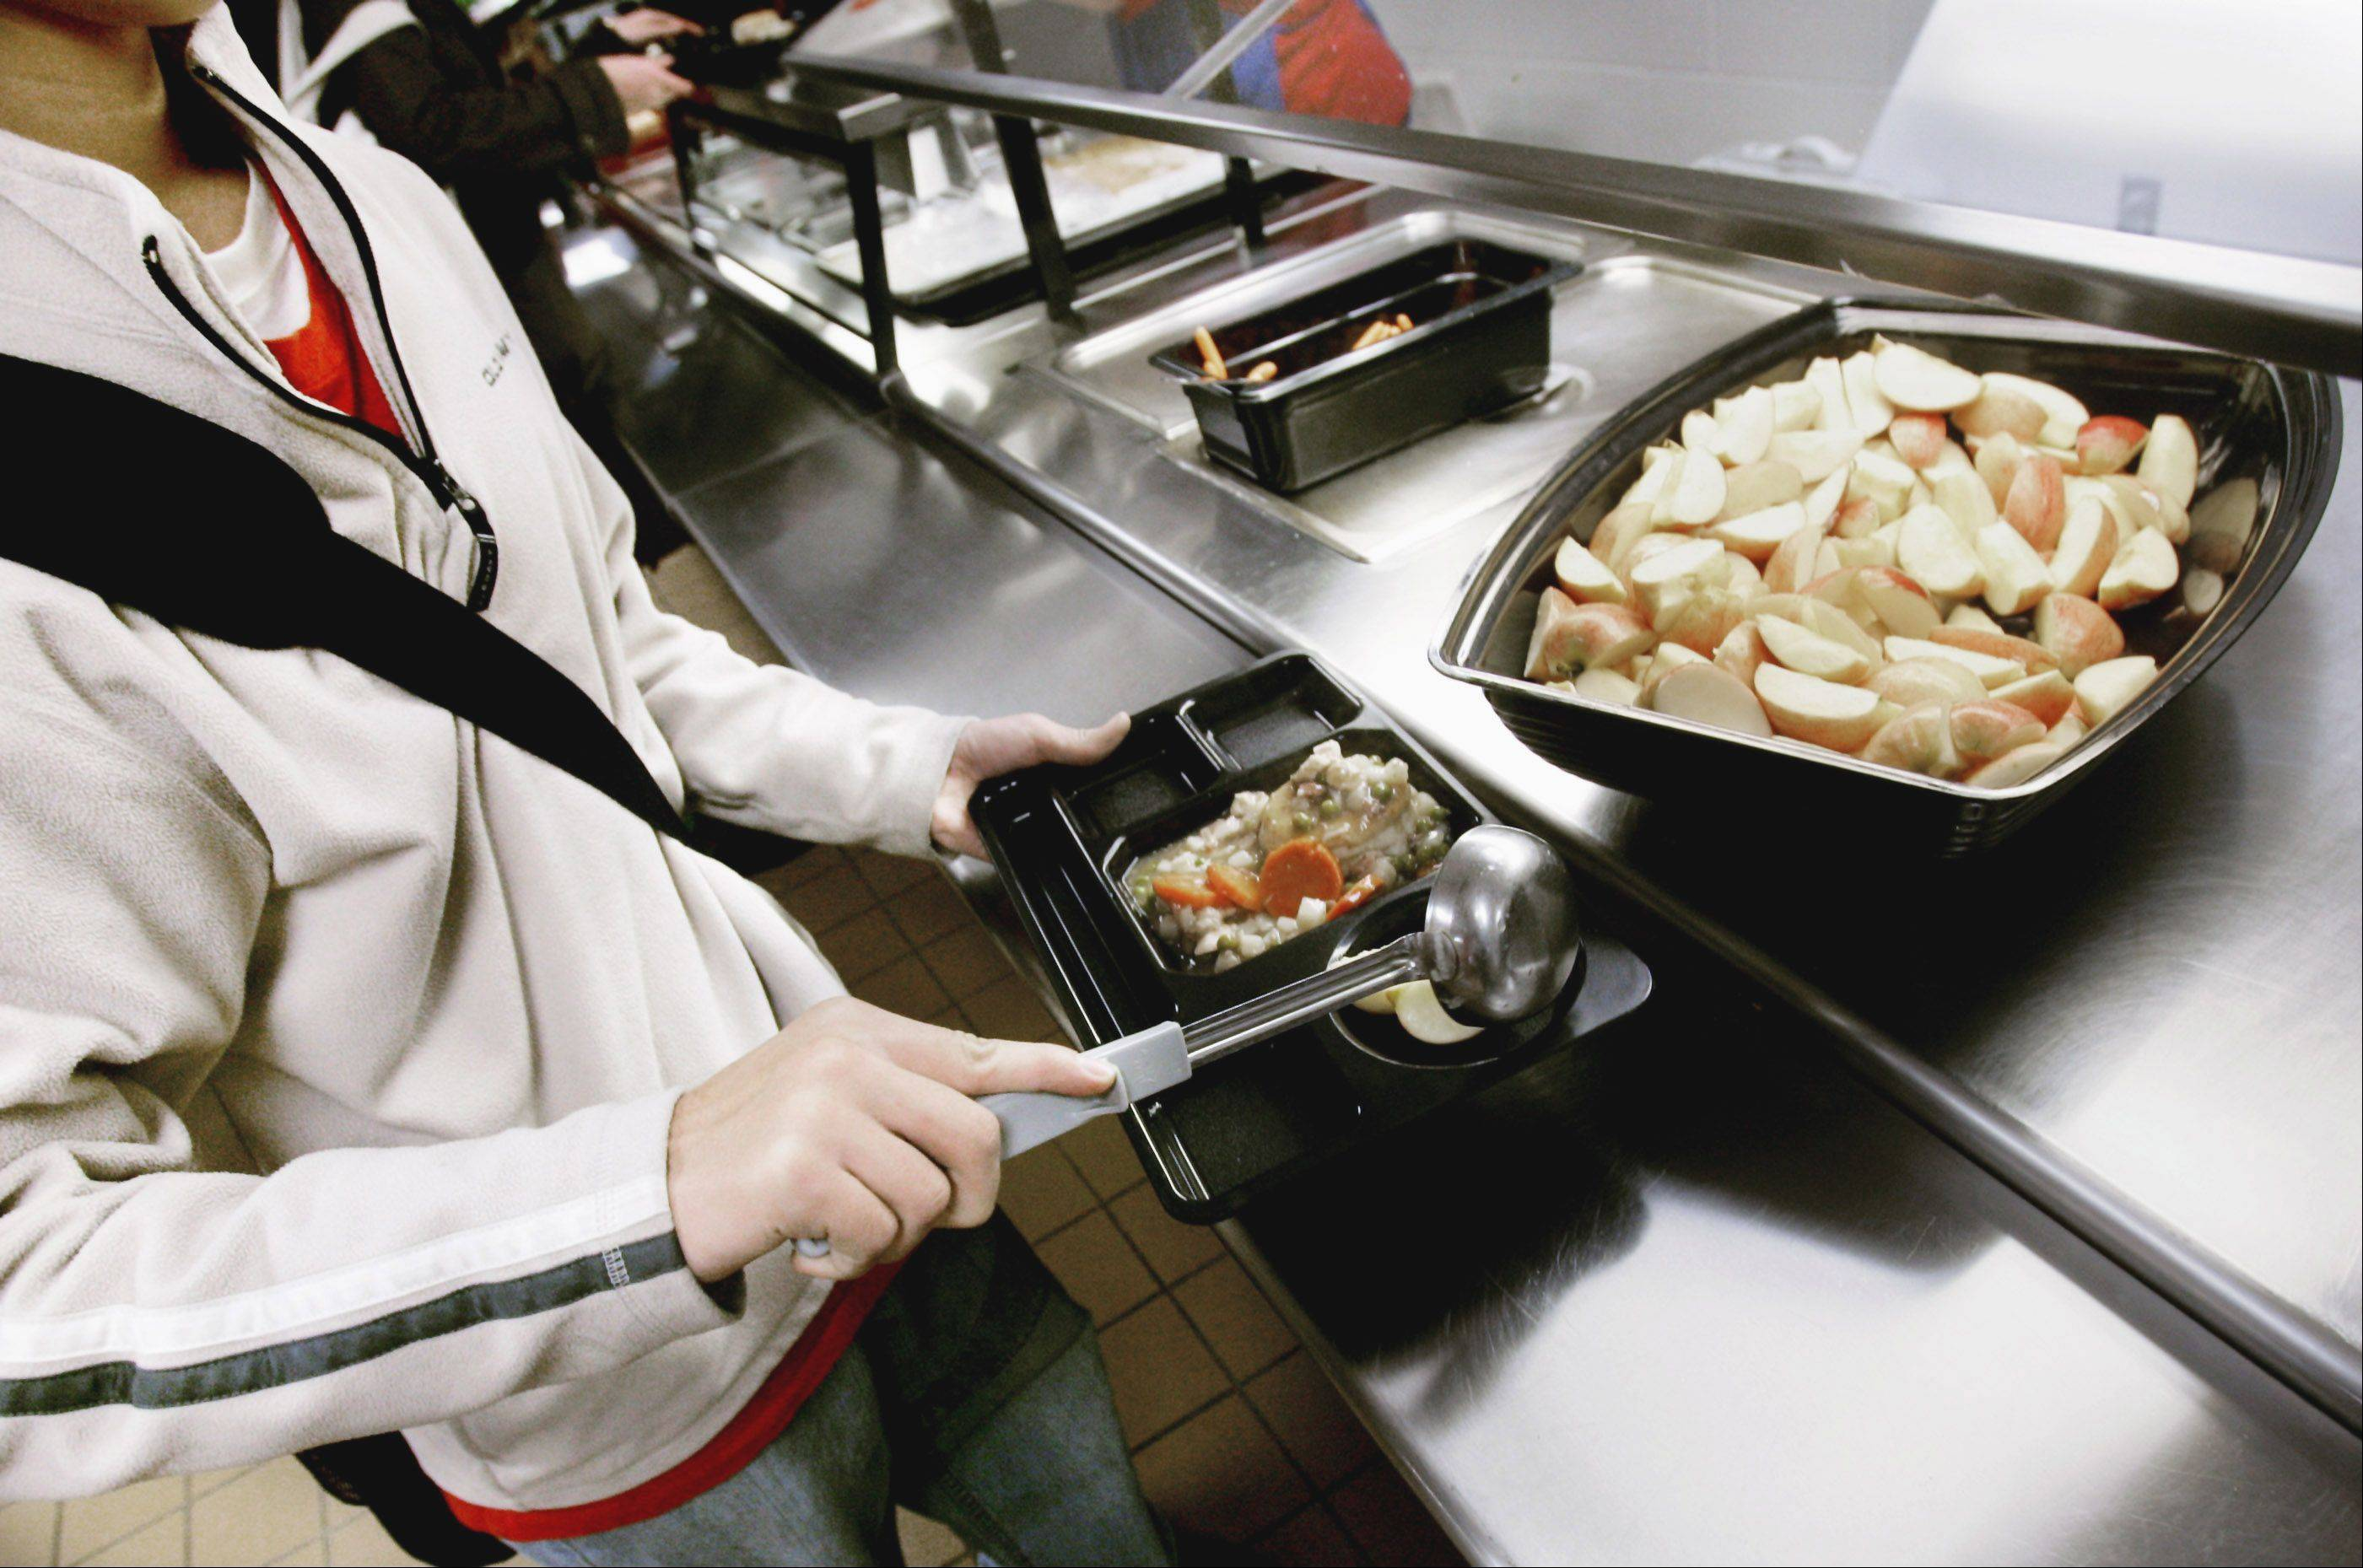 Lunch at Batavia schools is set to go up by 10 cents per meal. The district, which participates in the National School Lunch Program offering healthier options like the apple slices at this Minnesota school, is trying to bring costs more inline with the federal program.